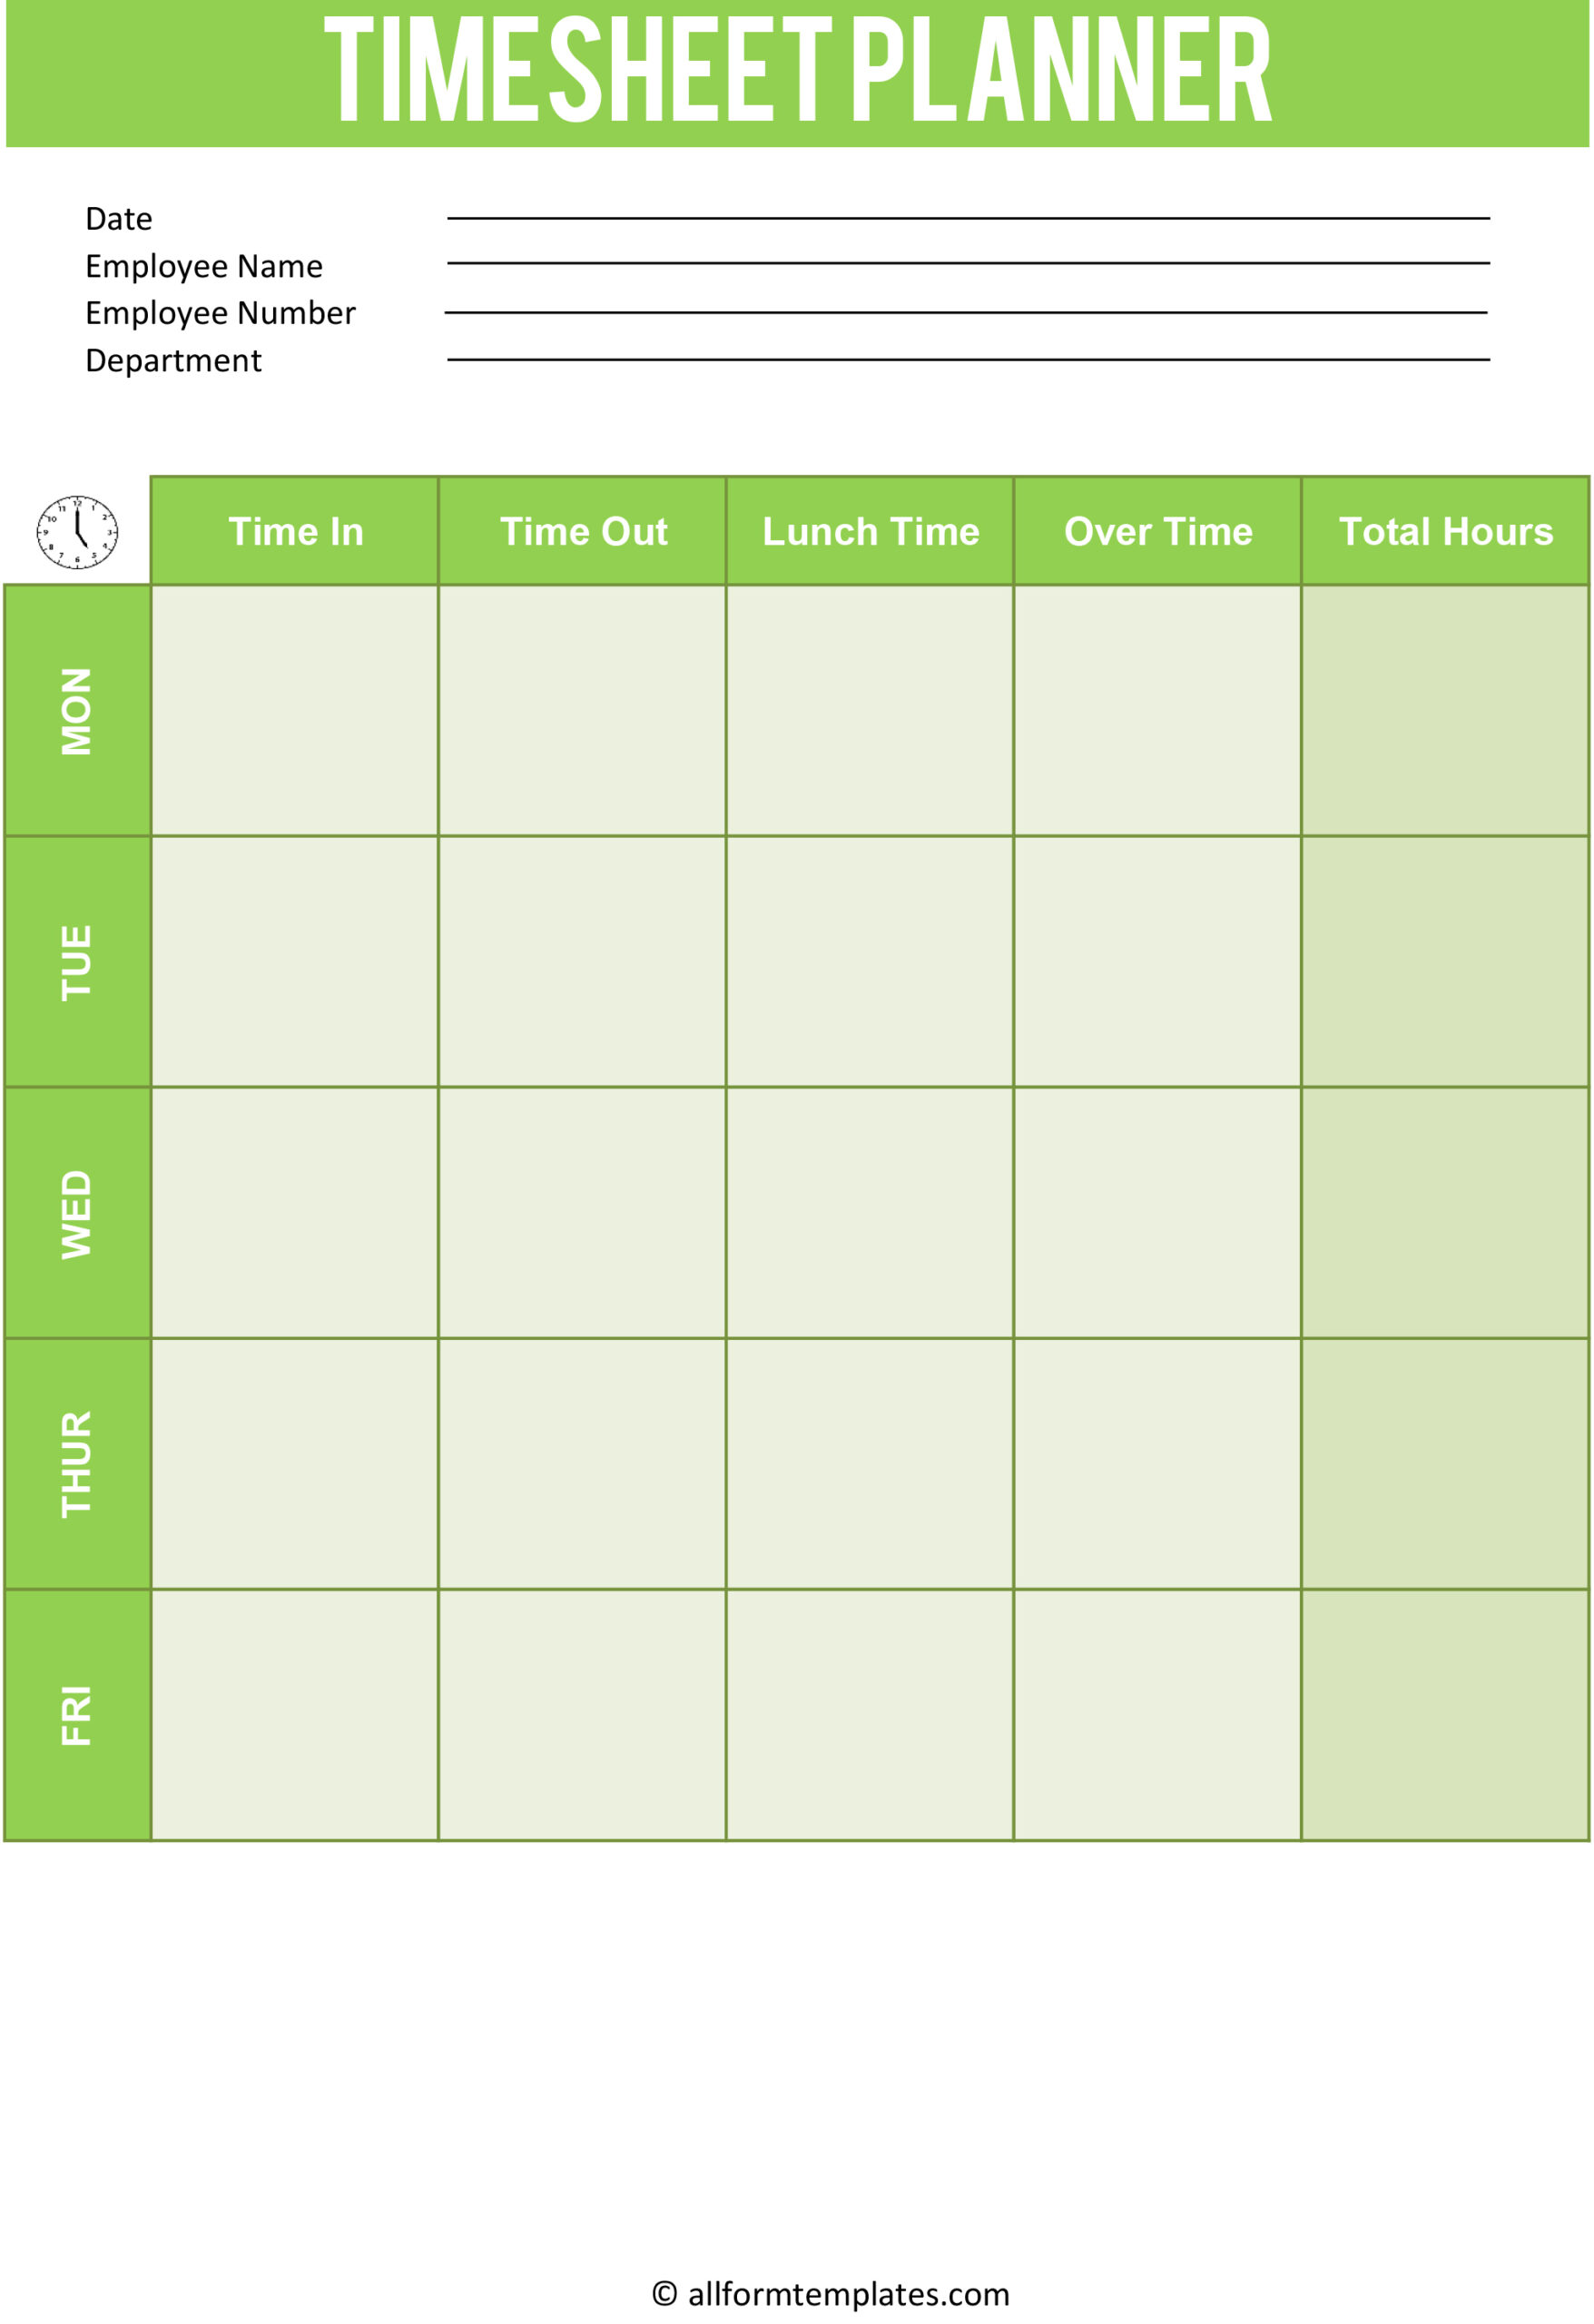 Blank-Timesheet-Template-HD